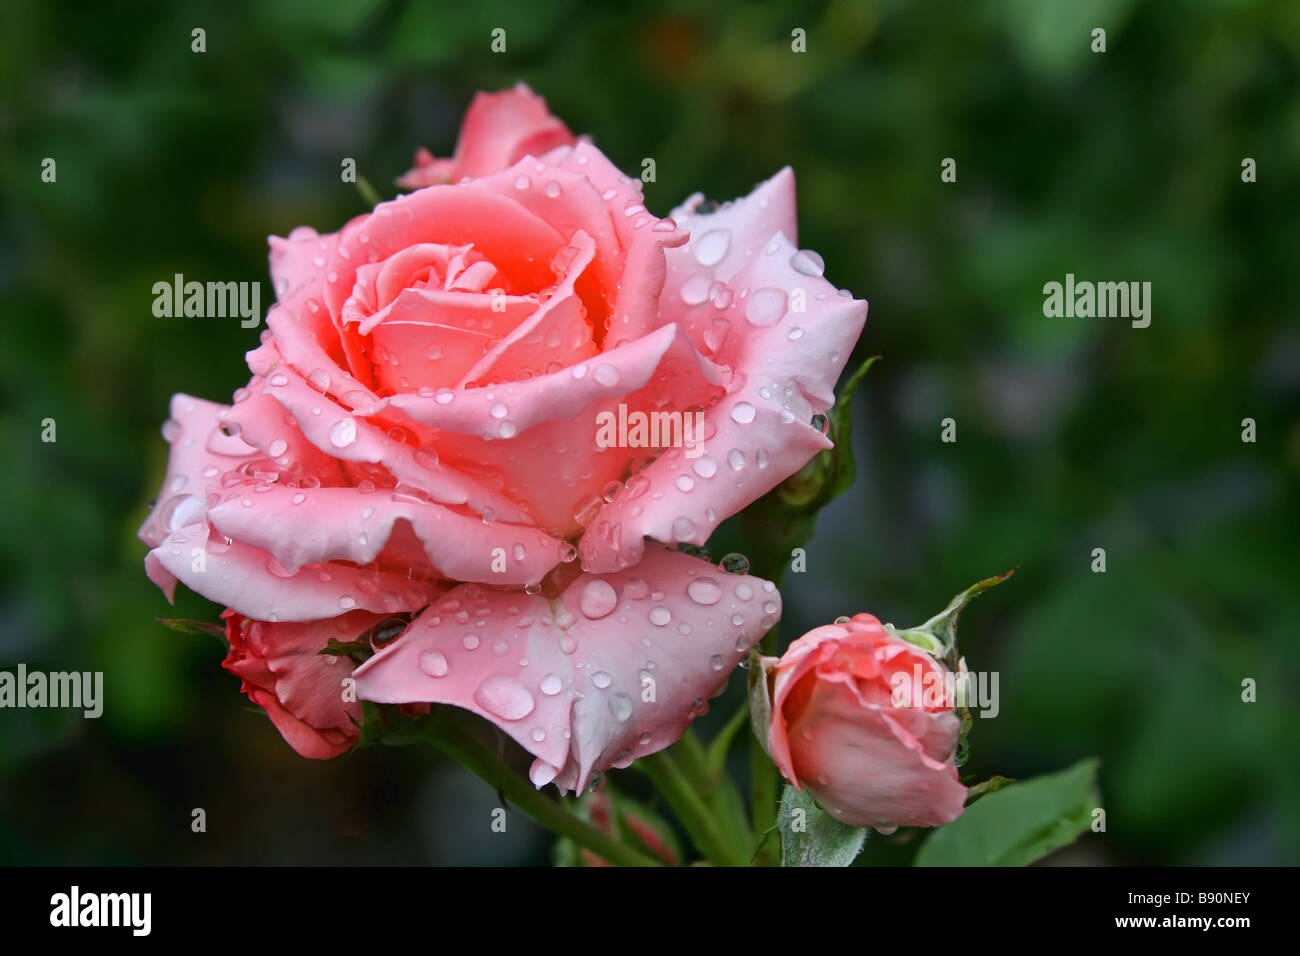 Single Red Rose Flower Stock Images: Beautiful Single Pink Rose In A Flower Garden Just After